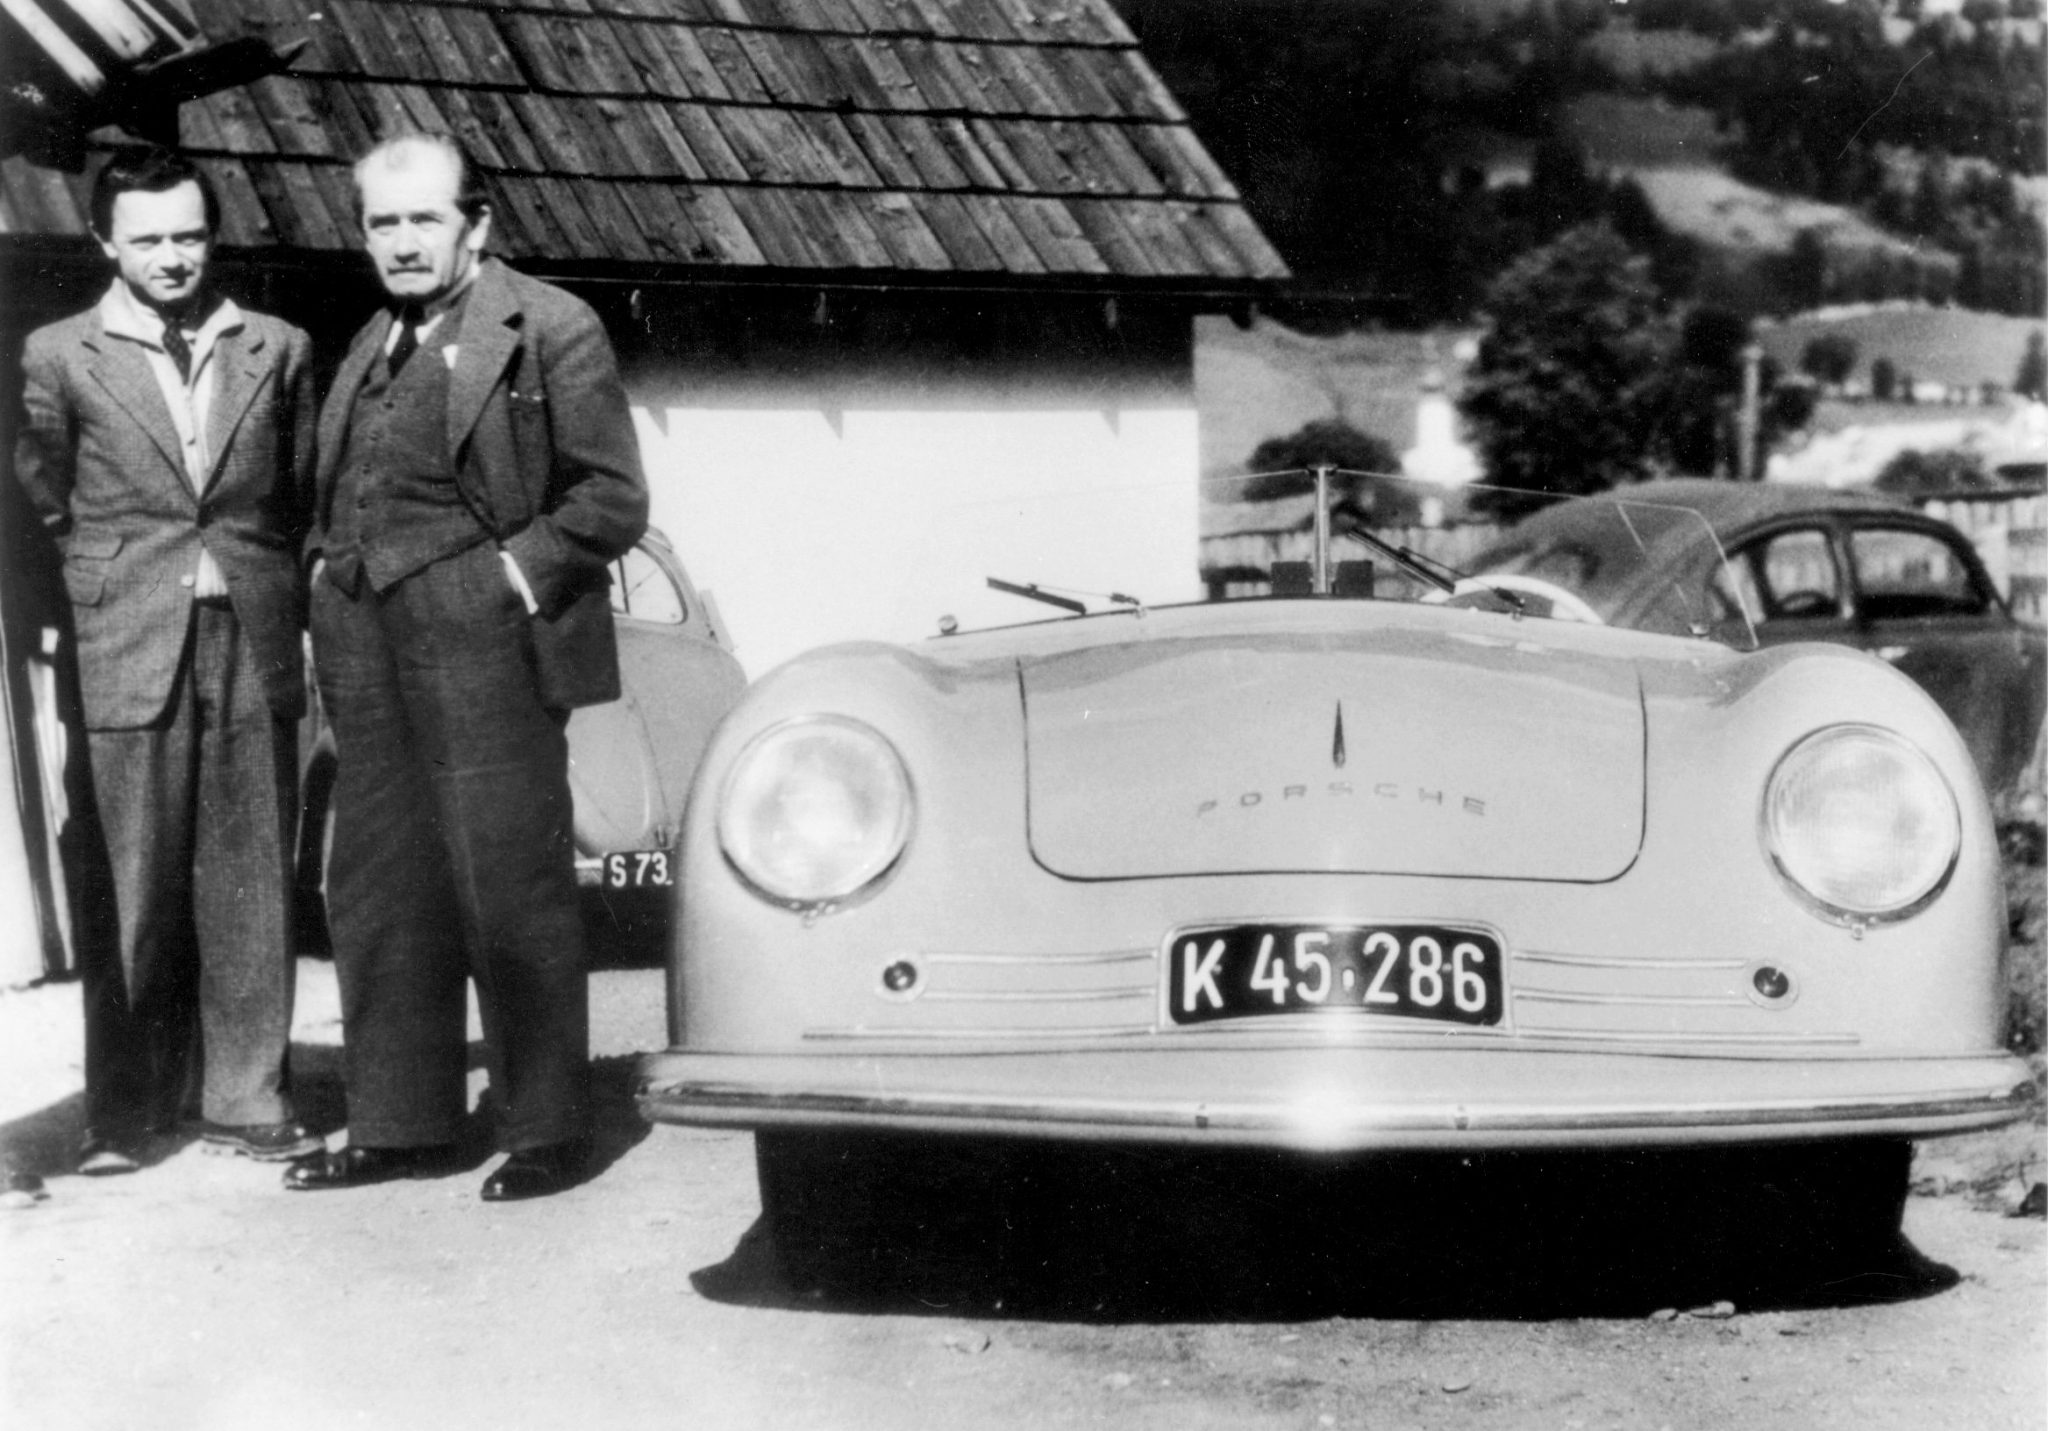 Ferry Porsche (left) and his father with the Gmünd roadster in 1948. His 20-month imprisonment had taken a toll on the elder Porsche's health. He was 73 years old when his son and the staff at Gmünd competed the fist car to bear the PORSCHE name across its hood.